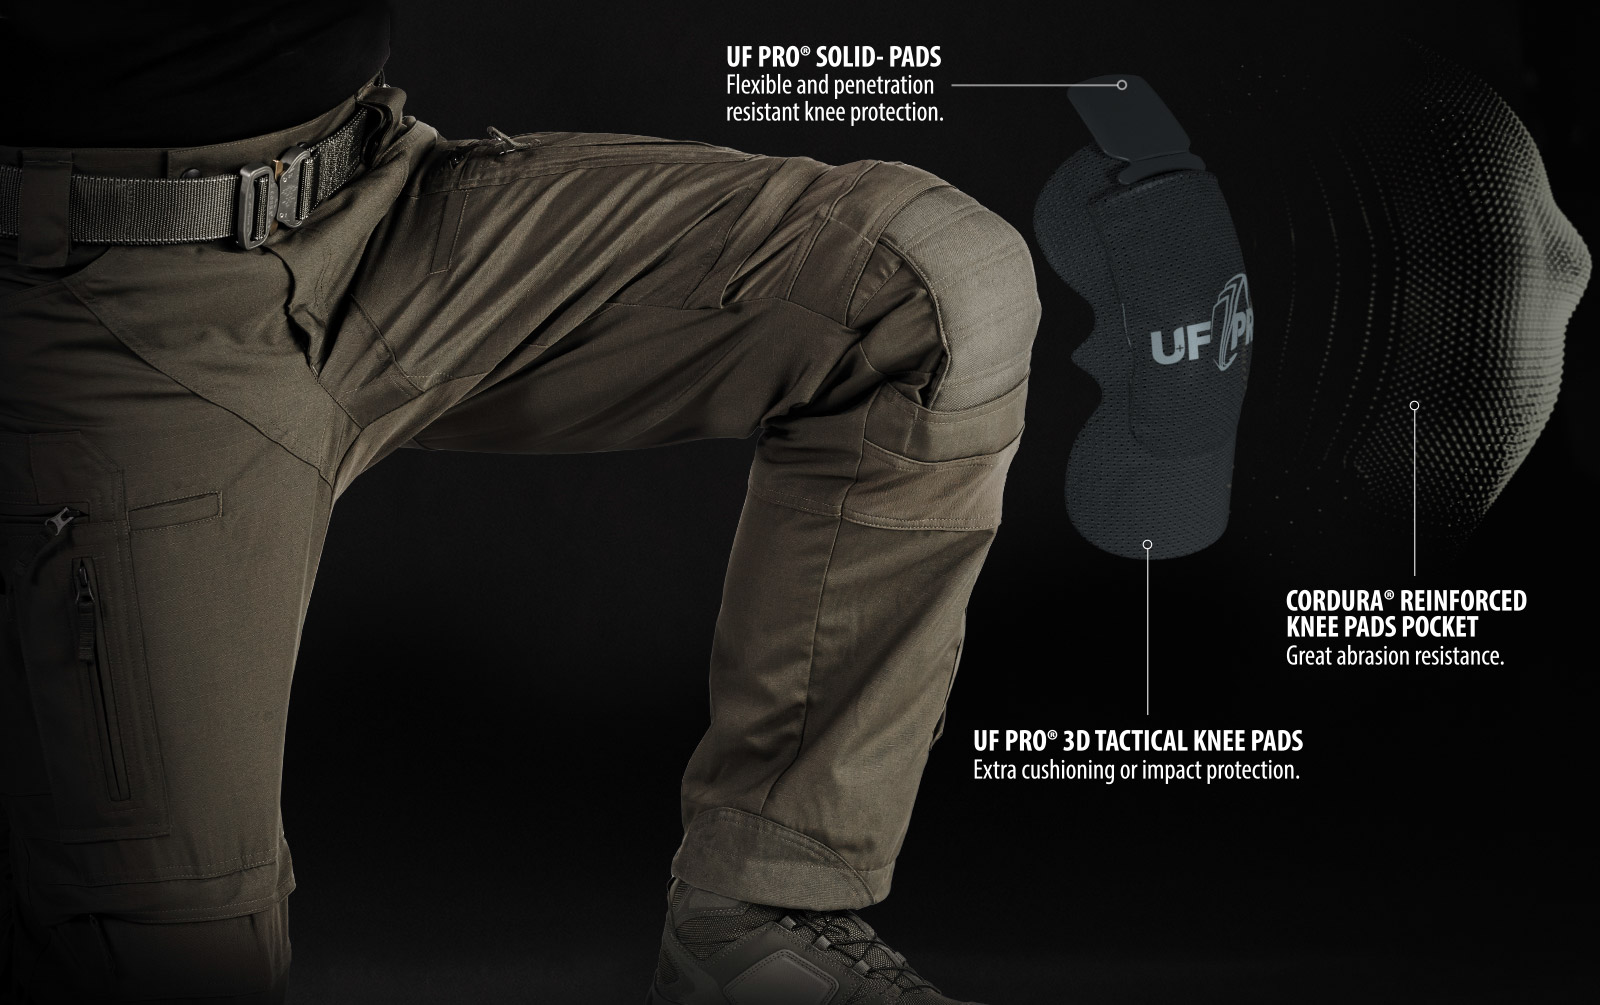 The UF PRO Knee protection System